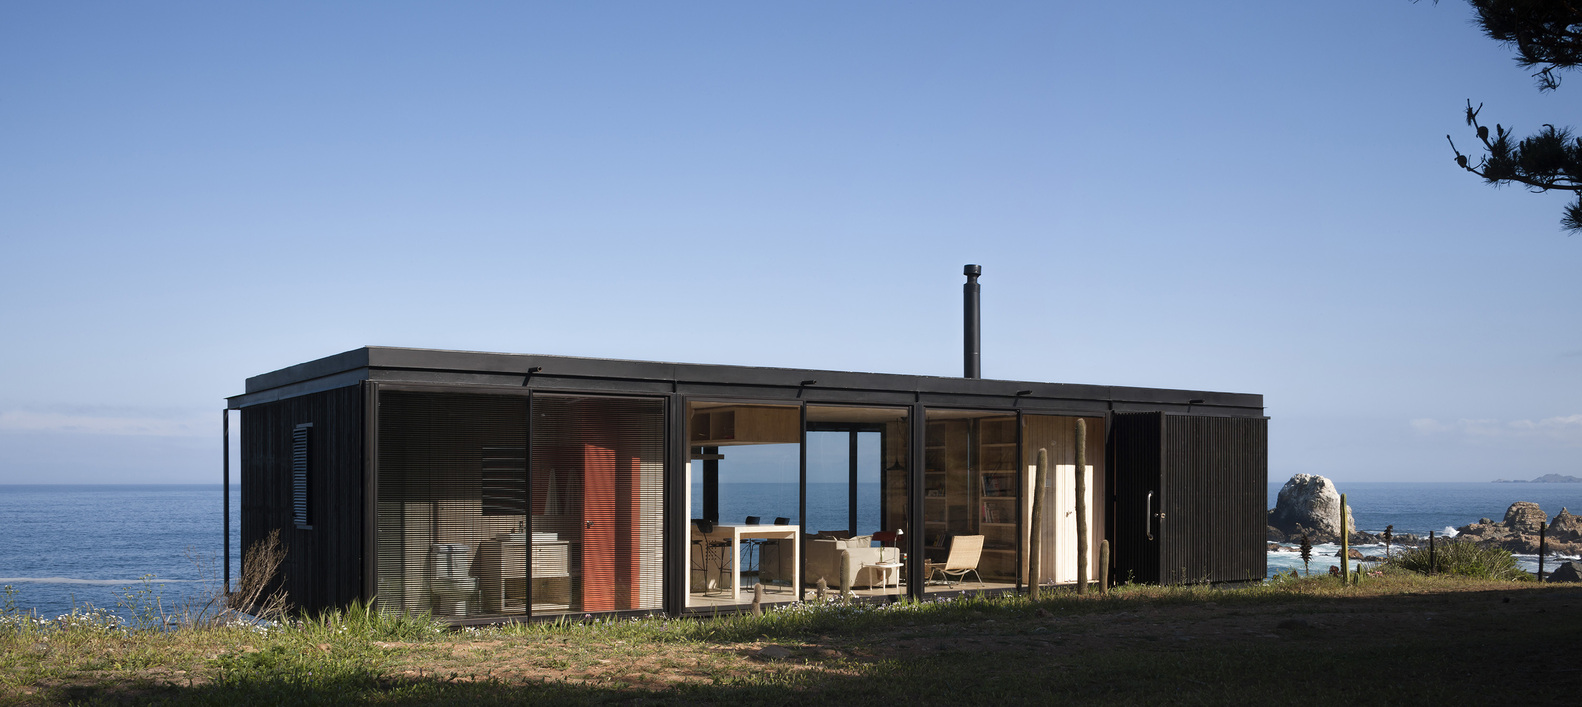 Small Prefab Homes Design with Wide Glass Sliding Door and Flat Roof facing Blue Sea